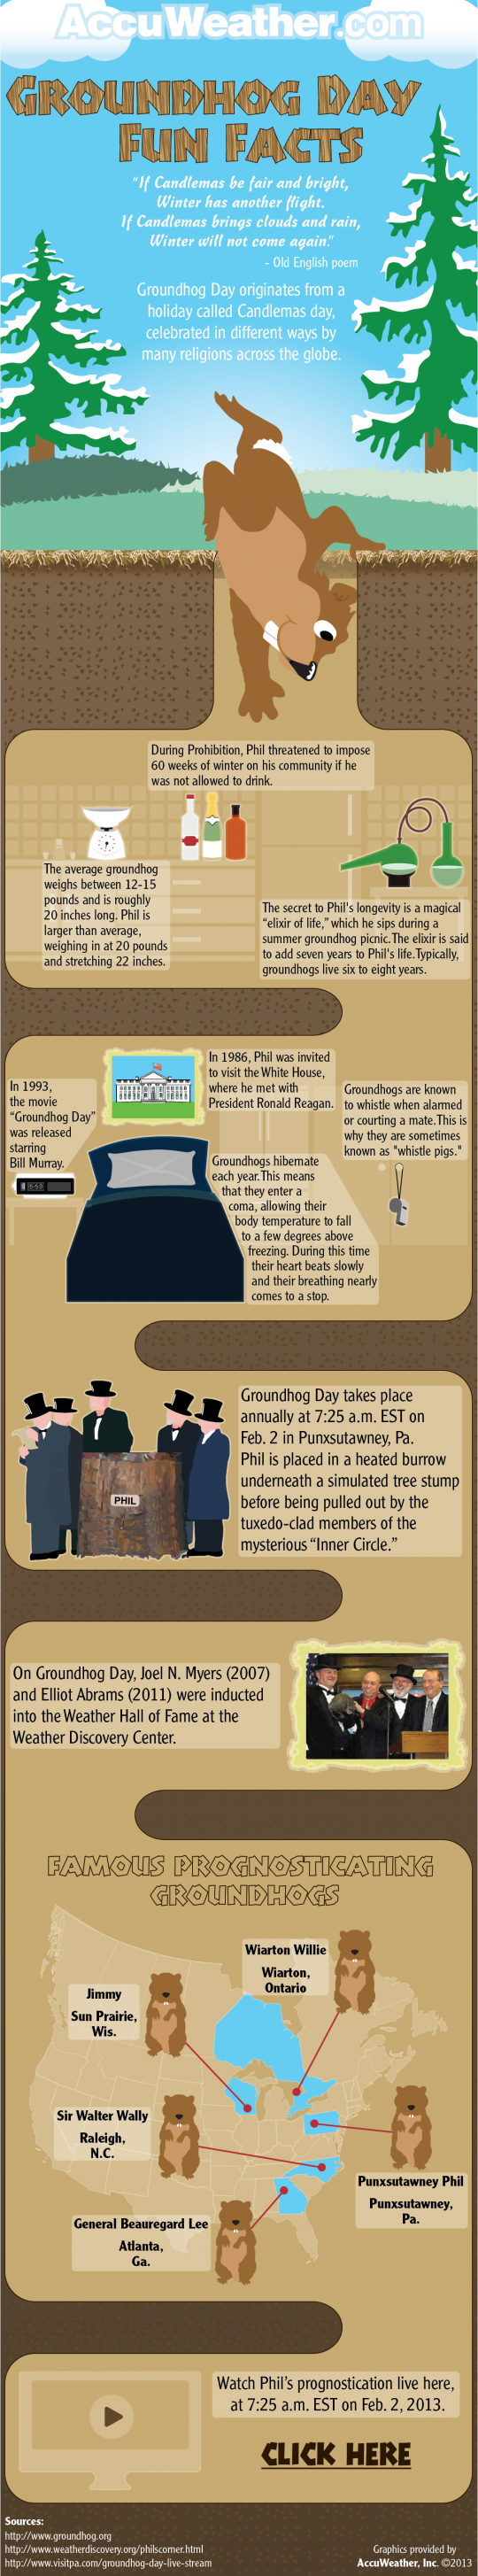 Groundhog Day Fun Facts